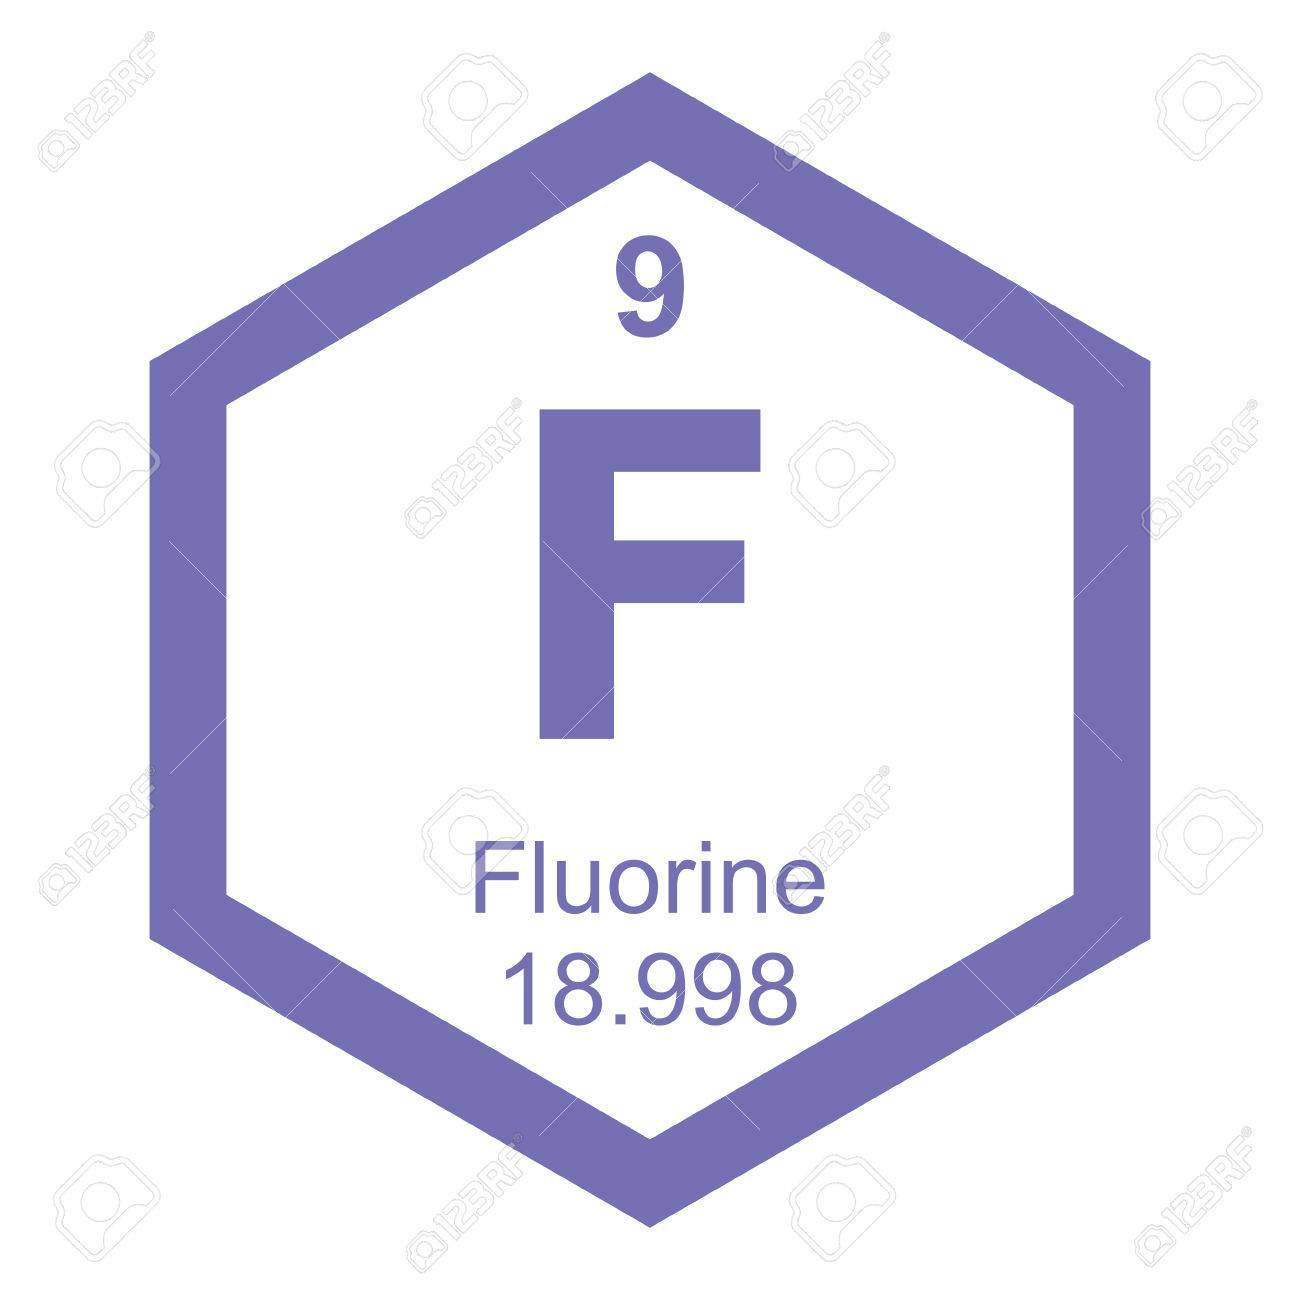 What is the symbol for fluorine on the periodic table gallery flouride periodic table gallery periodic table images is fluoride on the periodic table image collections periodic gamestrikefo Choice Image